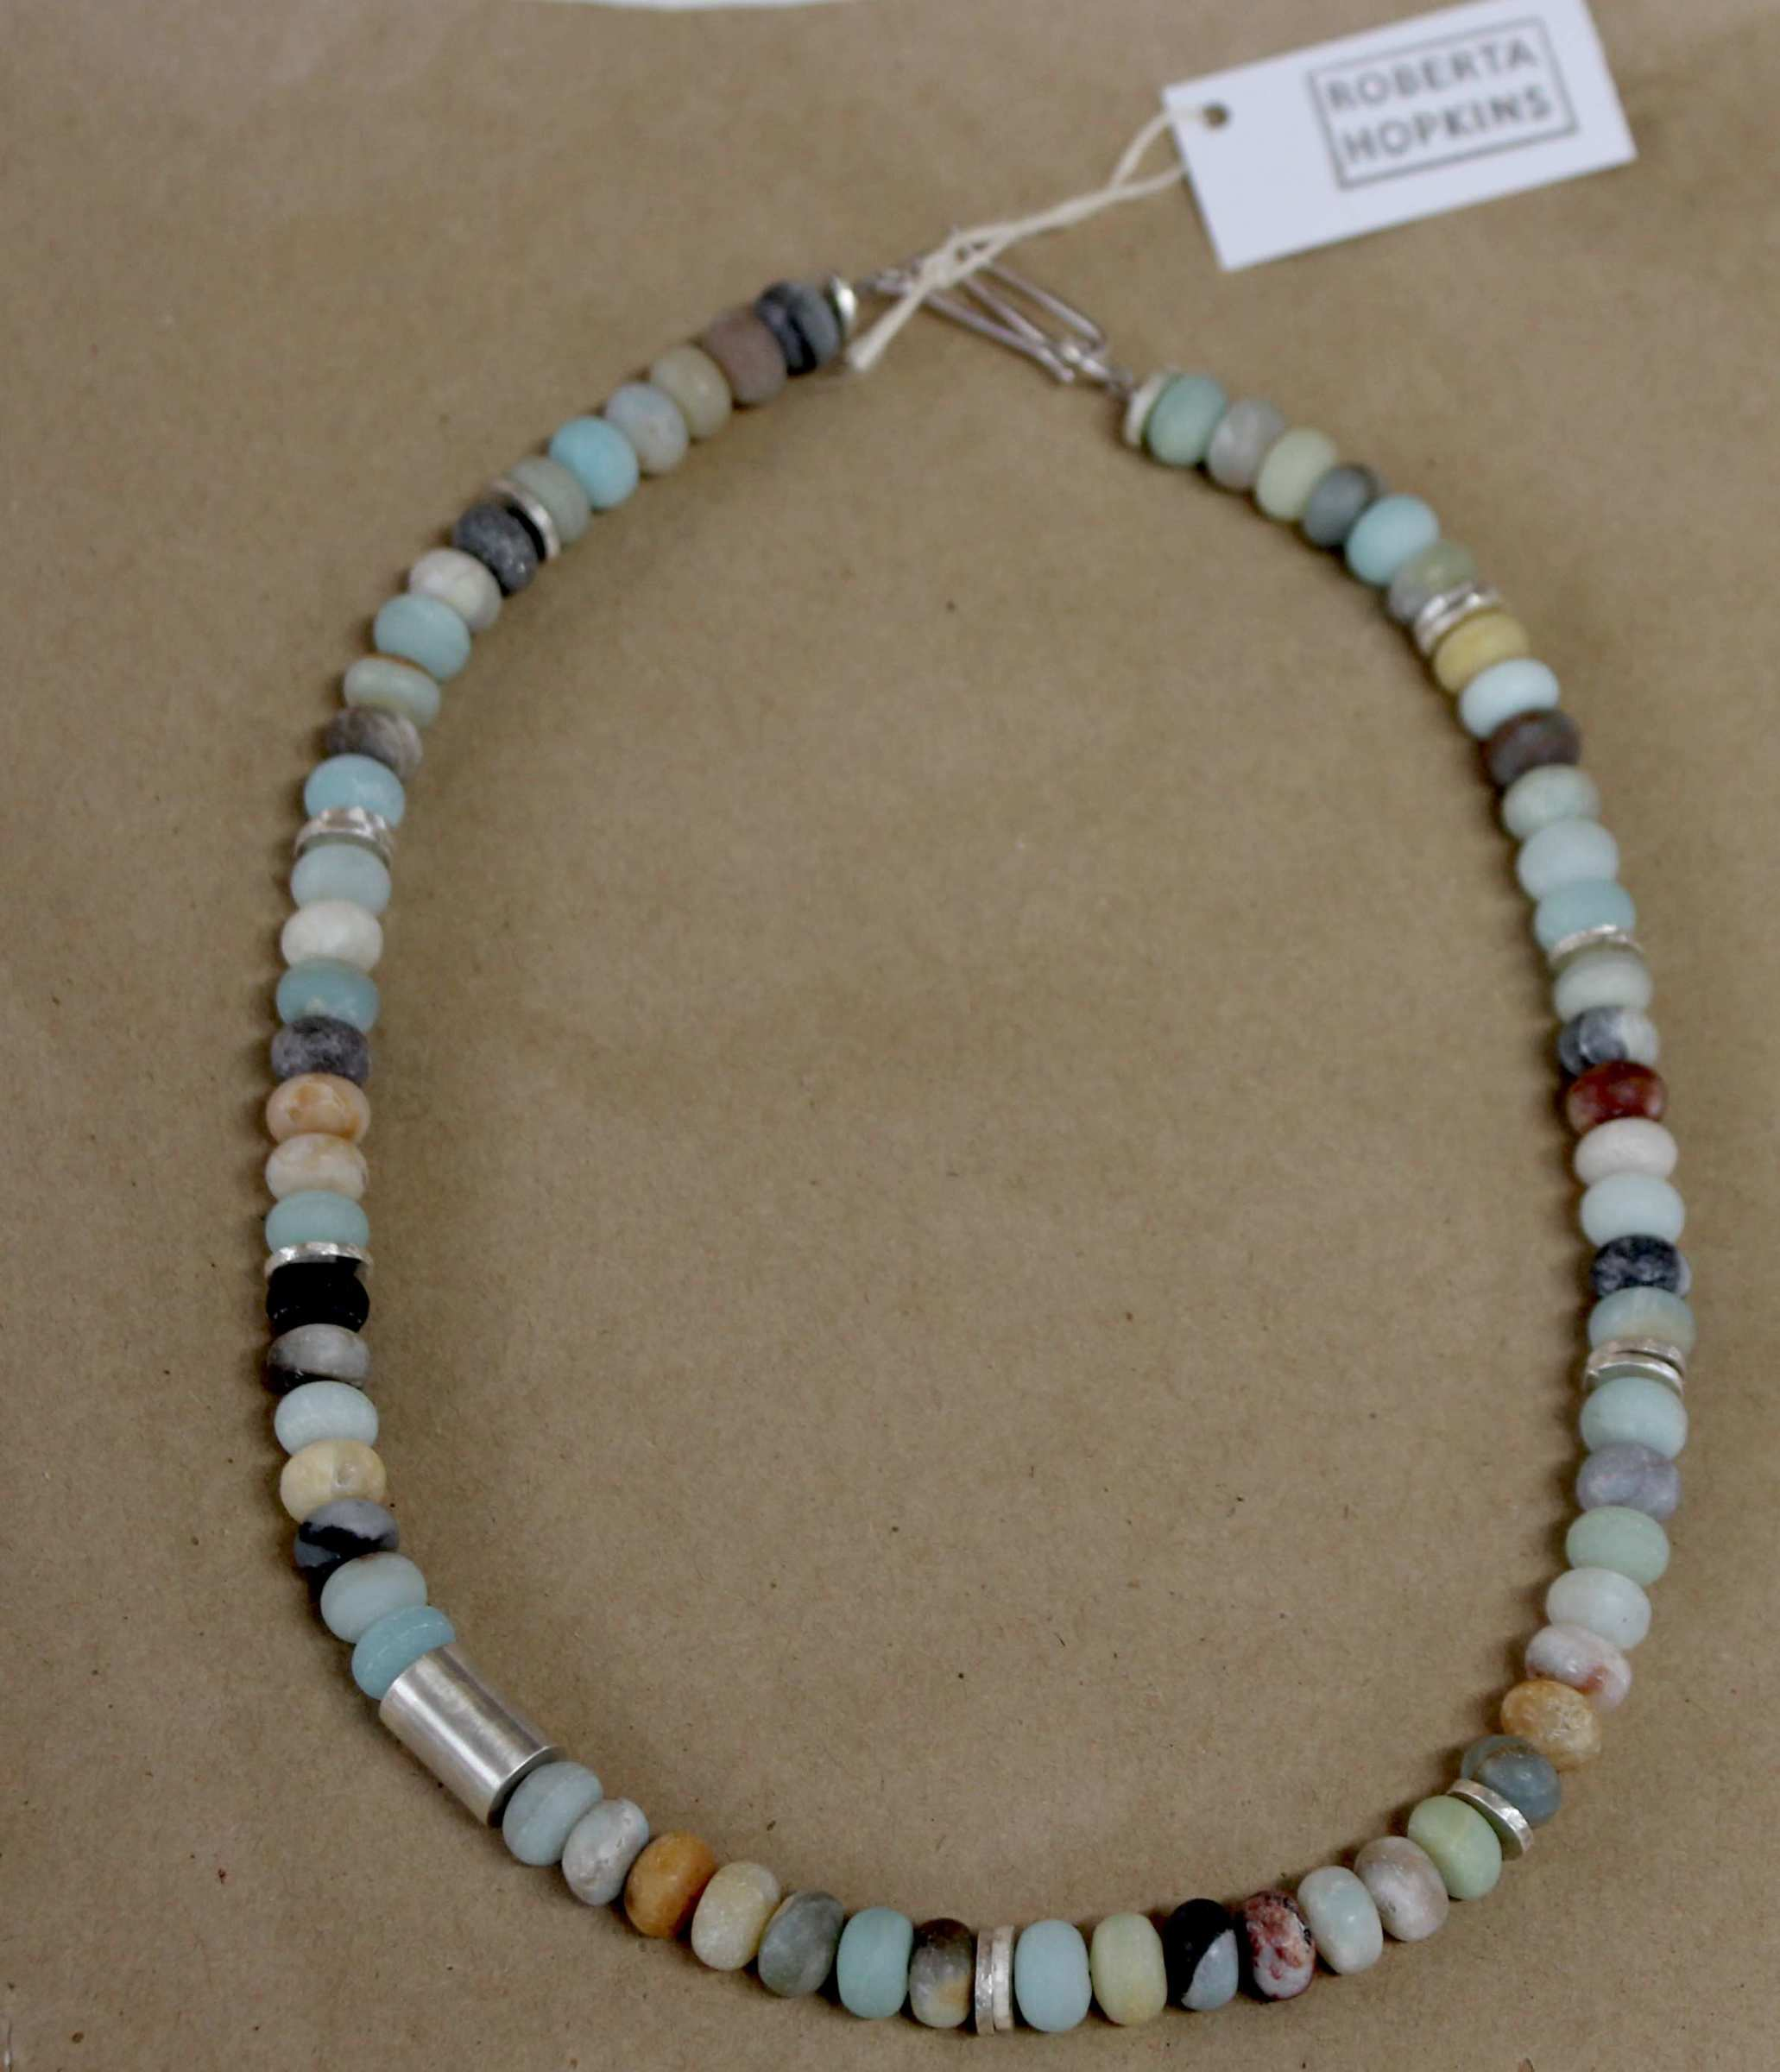 "<span class=""link fancybox-details-link""><a href=""/artists/148-roberta-hopkins/works/5842-roberta-hopkins-black-amazonite-small-rondelles-2018/"">View Detail Page</a></span><div class=""artist""><strong>Roberta Hopkins</strong></div> <div class=""title""><em>Black Amazonite Small Rondelles</em>, 2018</div> <div class=""medium"">sterling silver</div><div class=""price"">£135.00</div><div class=""copyright_line"">£ 13.50 x 10 Months, OwnArt 0% APR</div>"